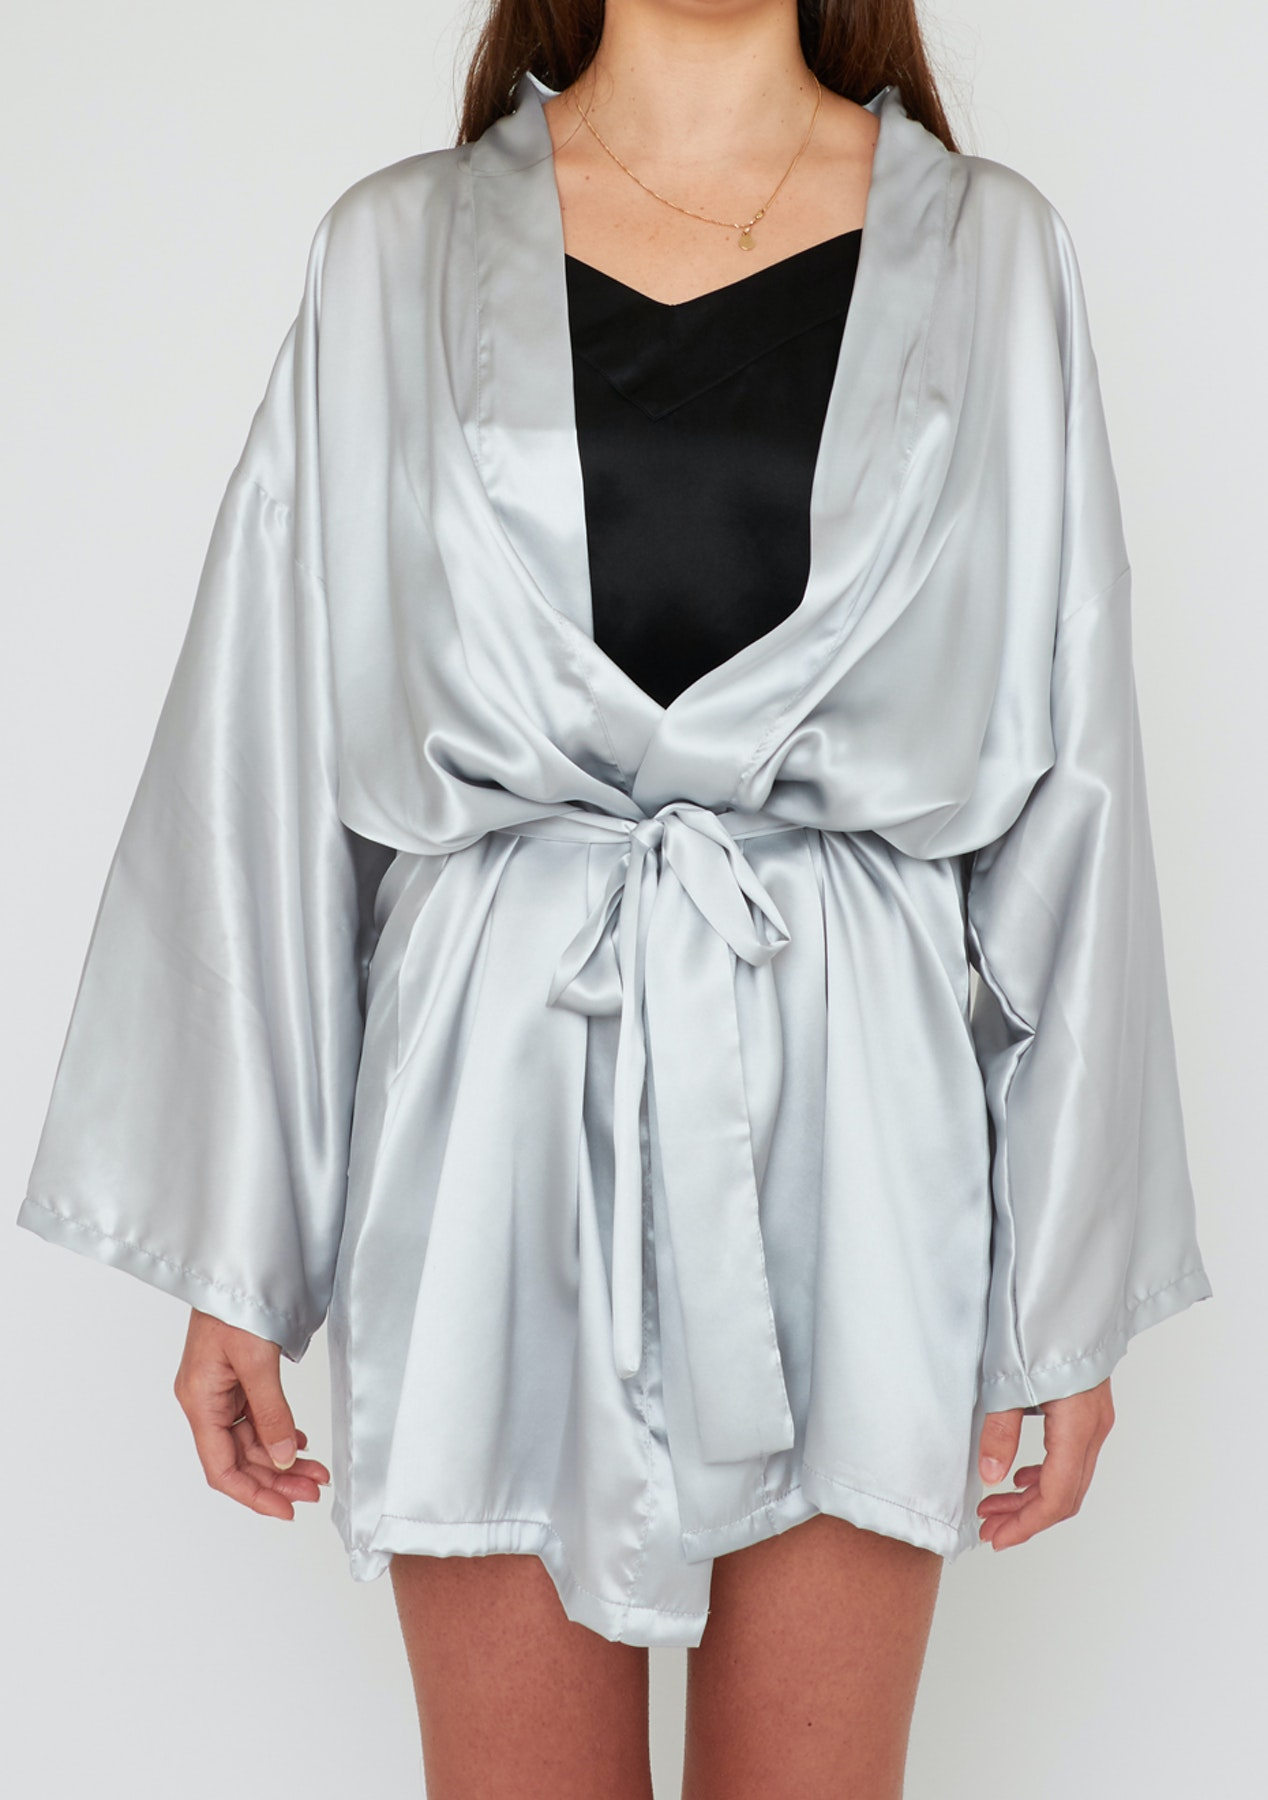 separation shoes attractive style variety of designs and colors Slumber - 100% Silk Robe - Light Grey